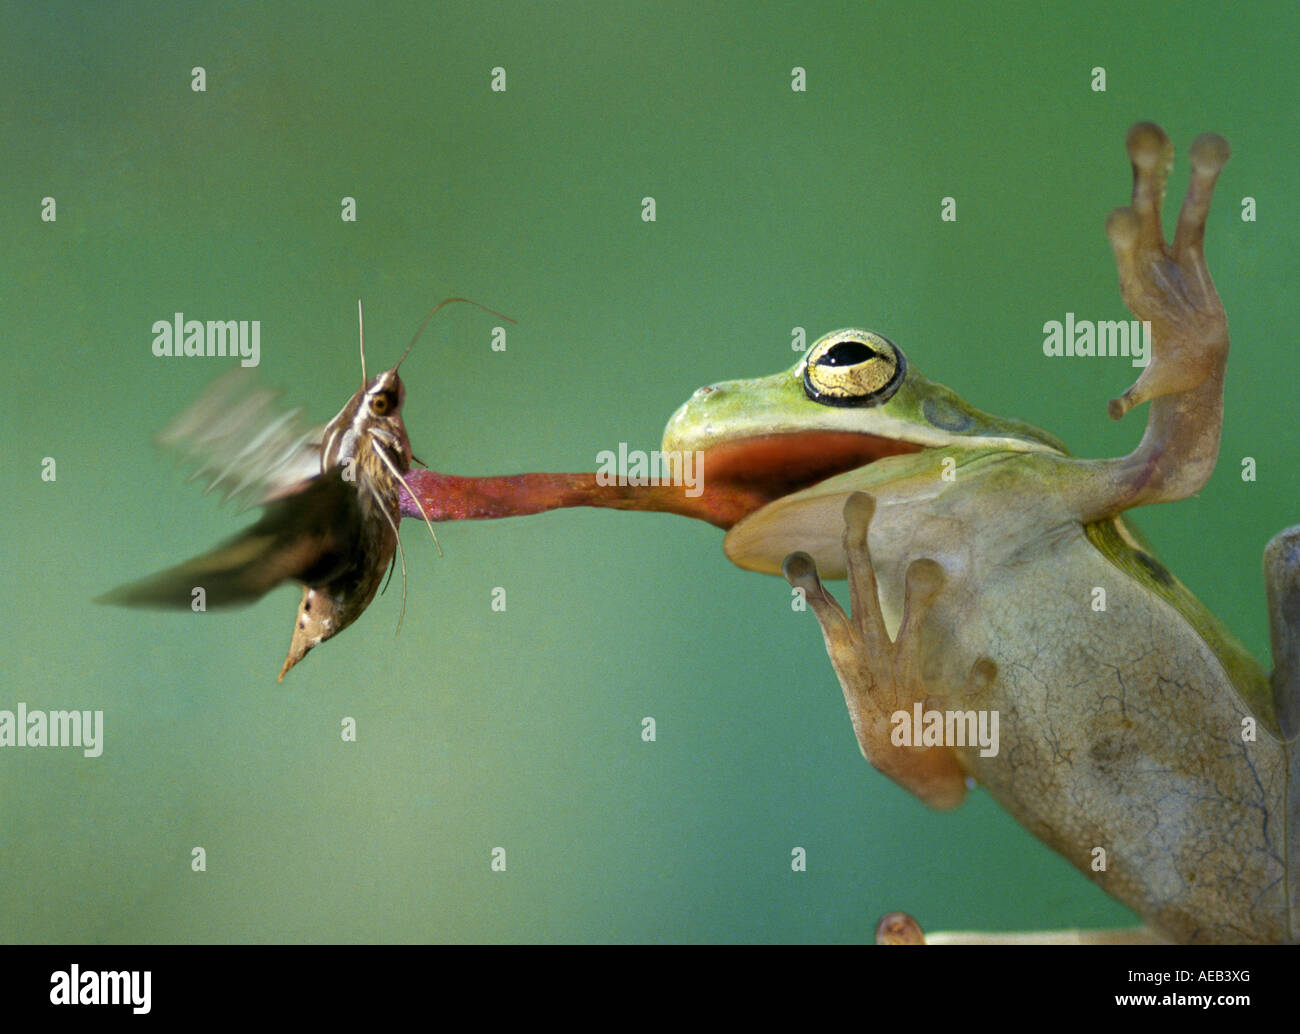 A green tree frog Hyla cinerea snags a hawk moth for ...